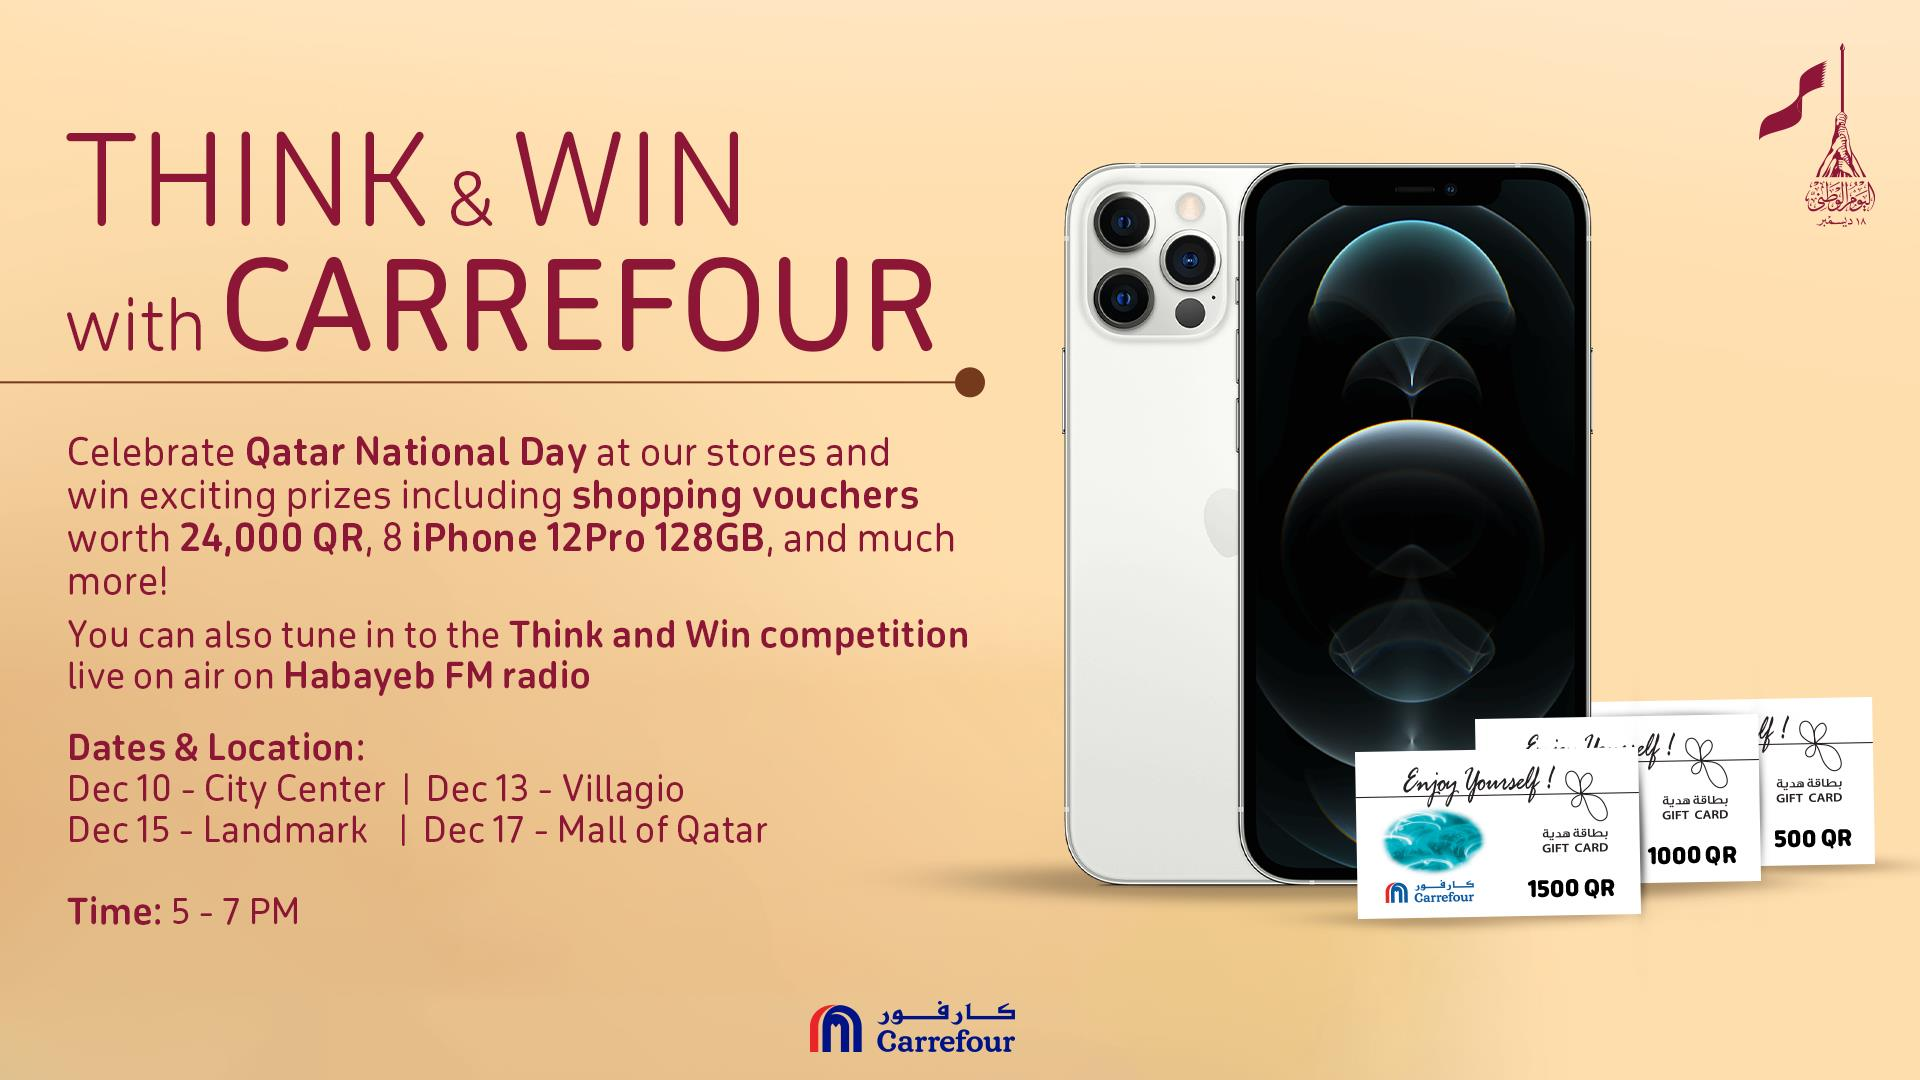 "Image may contain: ‎text that says ""‎THINK & WIN with CARREFOUR الفى ساديغير Celebrate Qatar National Day at our stores and win exciting prizes including shopping vouchers worth 24,000 QR, iPhone 12Pro 128GB, and much more! can also tune the Think and Win competition on air on Habayeb FM radio Dates Location: Center Dec13- Villagio Landmark Dec17 -Mall of Qatar Time:5-7PM Younself! CARD CARD M Carrefour 1000 QR 500 QR 1500 QR كارفور Carrefour‎""‎"